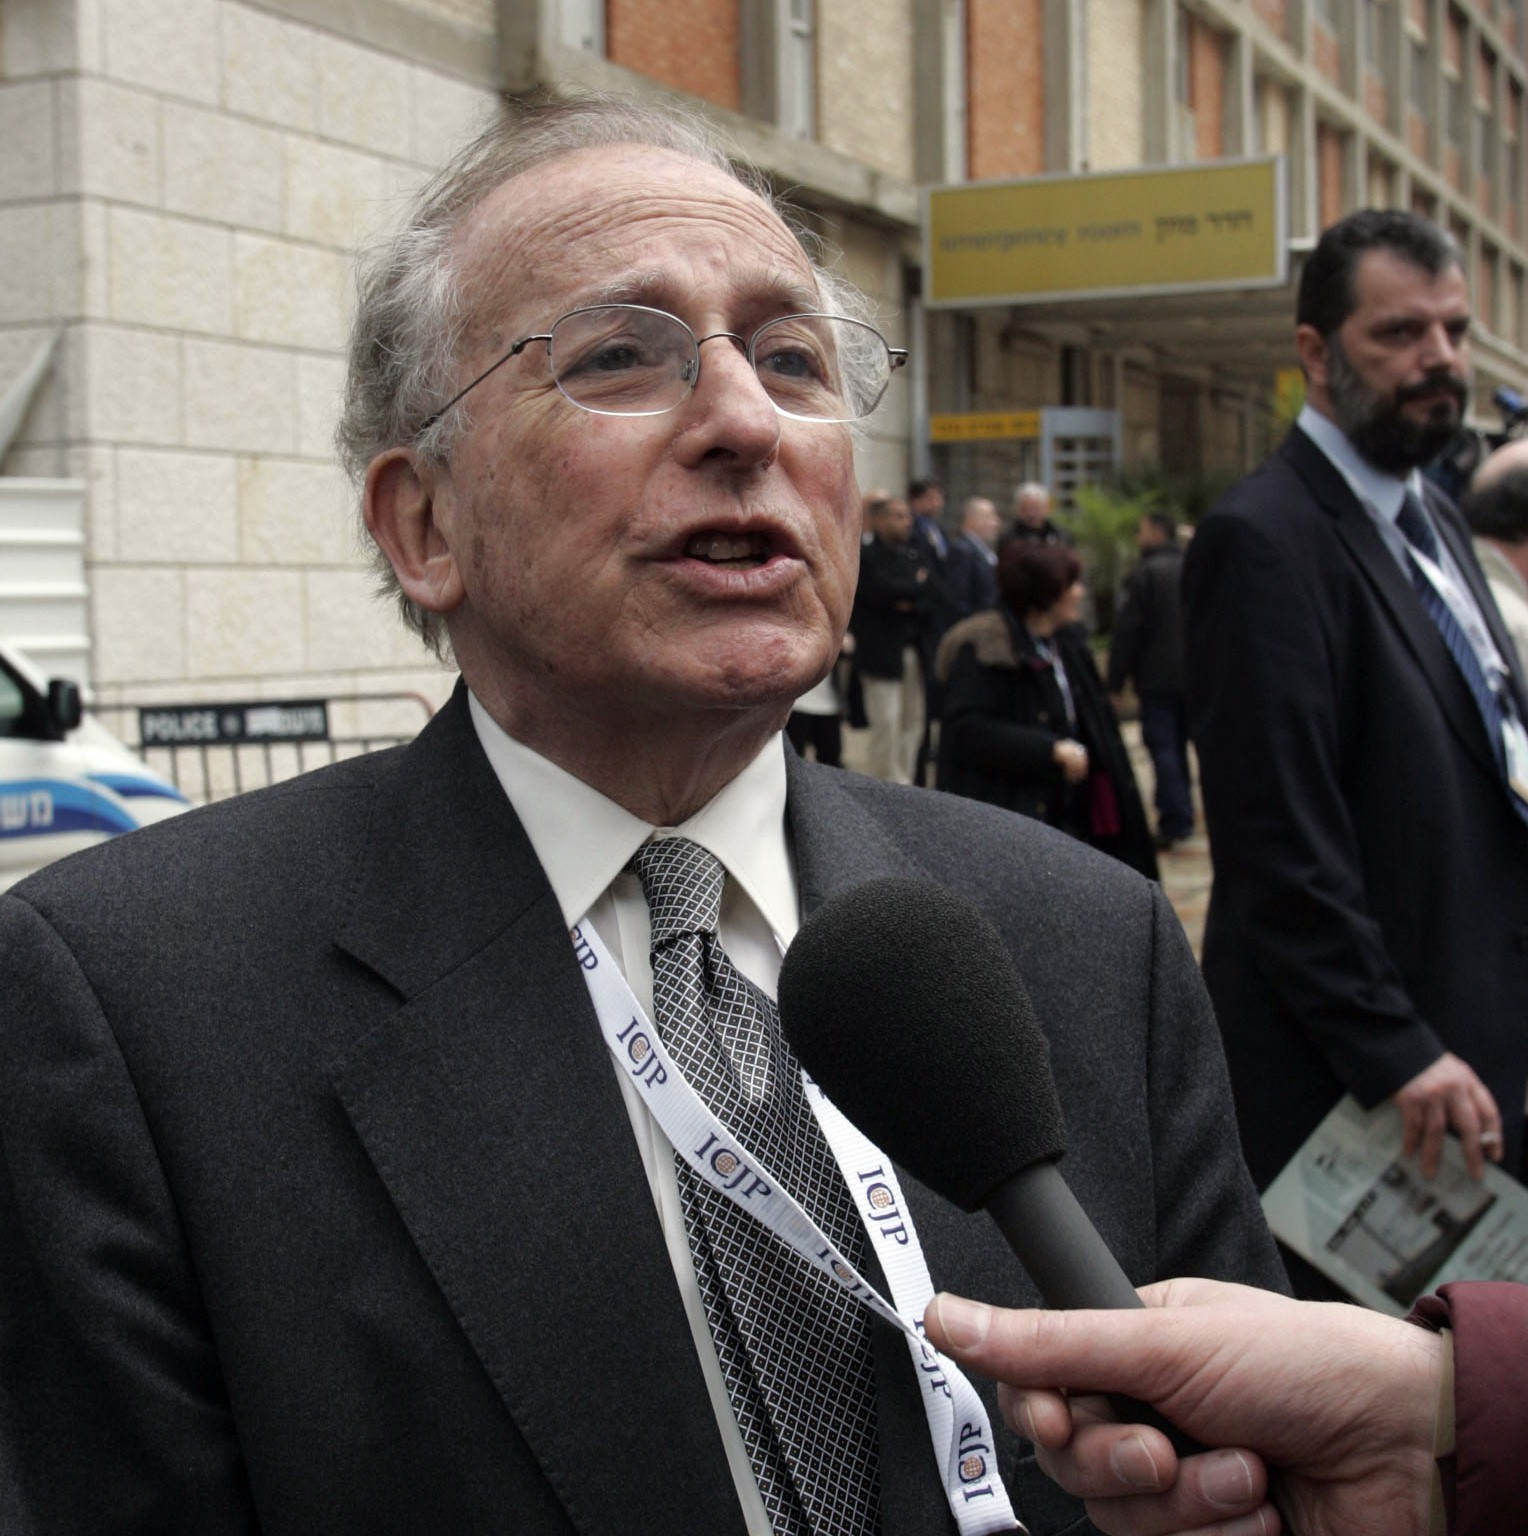 Lord Janner has been ruled fit to stand trial by a magistrate (Picture: Getty)